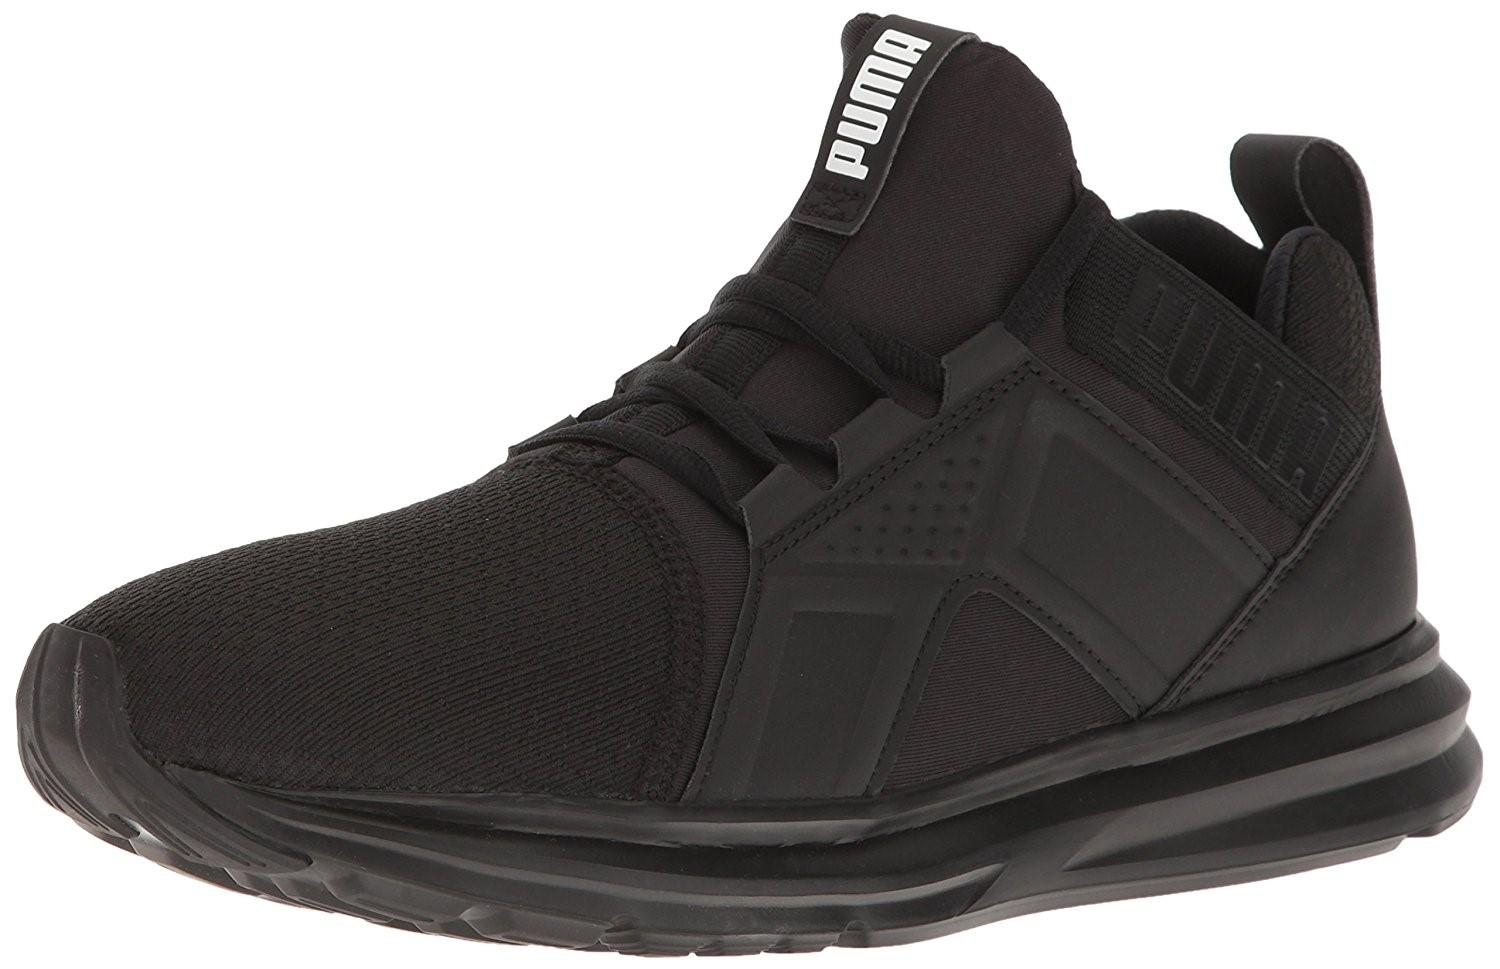 Largest Supplier Clearance Collections Mens Enzo Nf Mid Cross Trainers Puma Cheap Order Discount Genuine Buy Cheap Pick A Best BRYKRQj